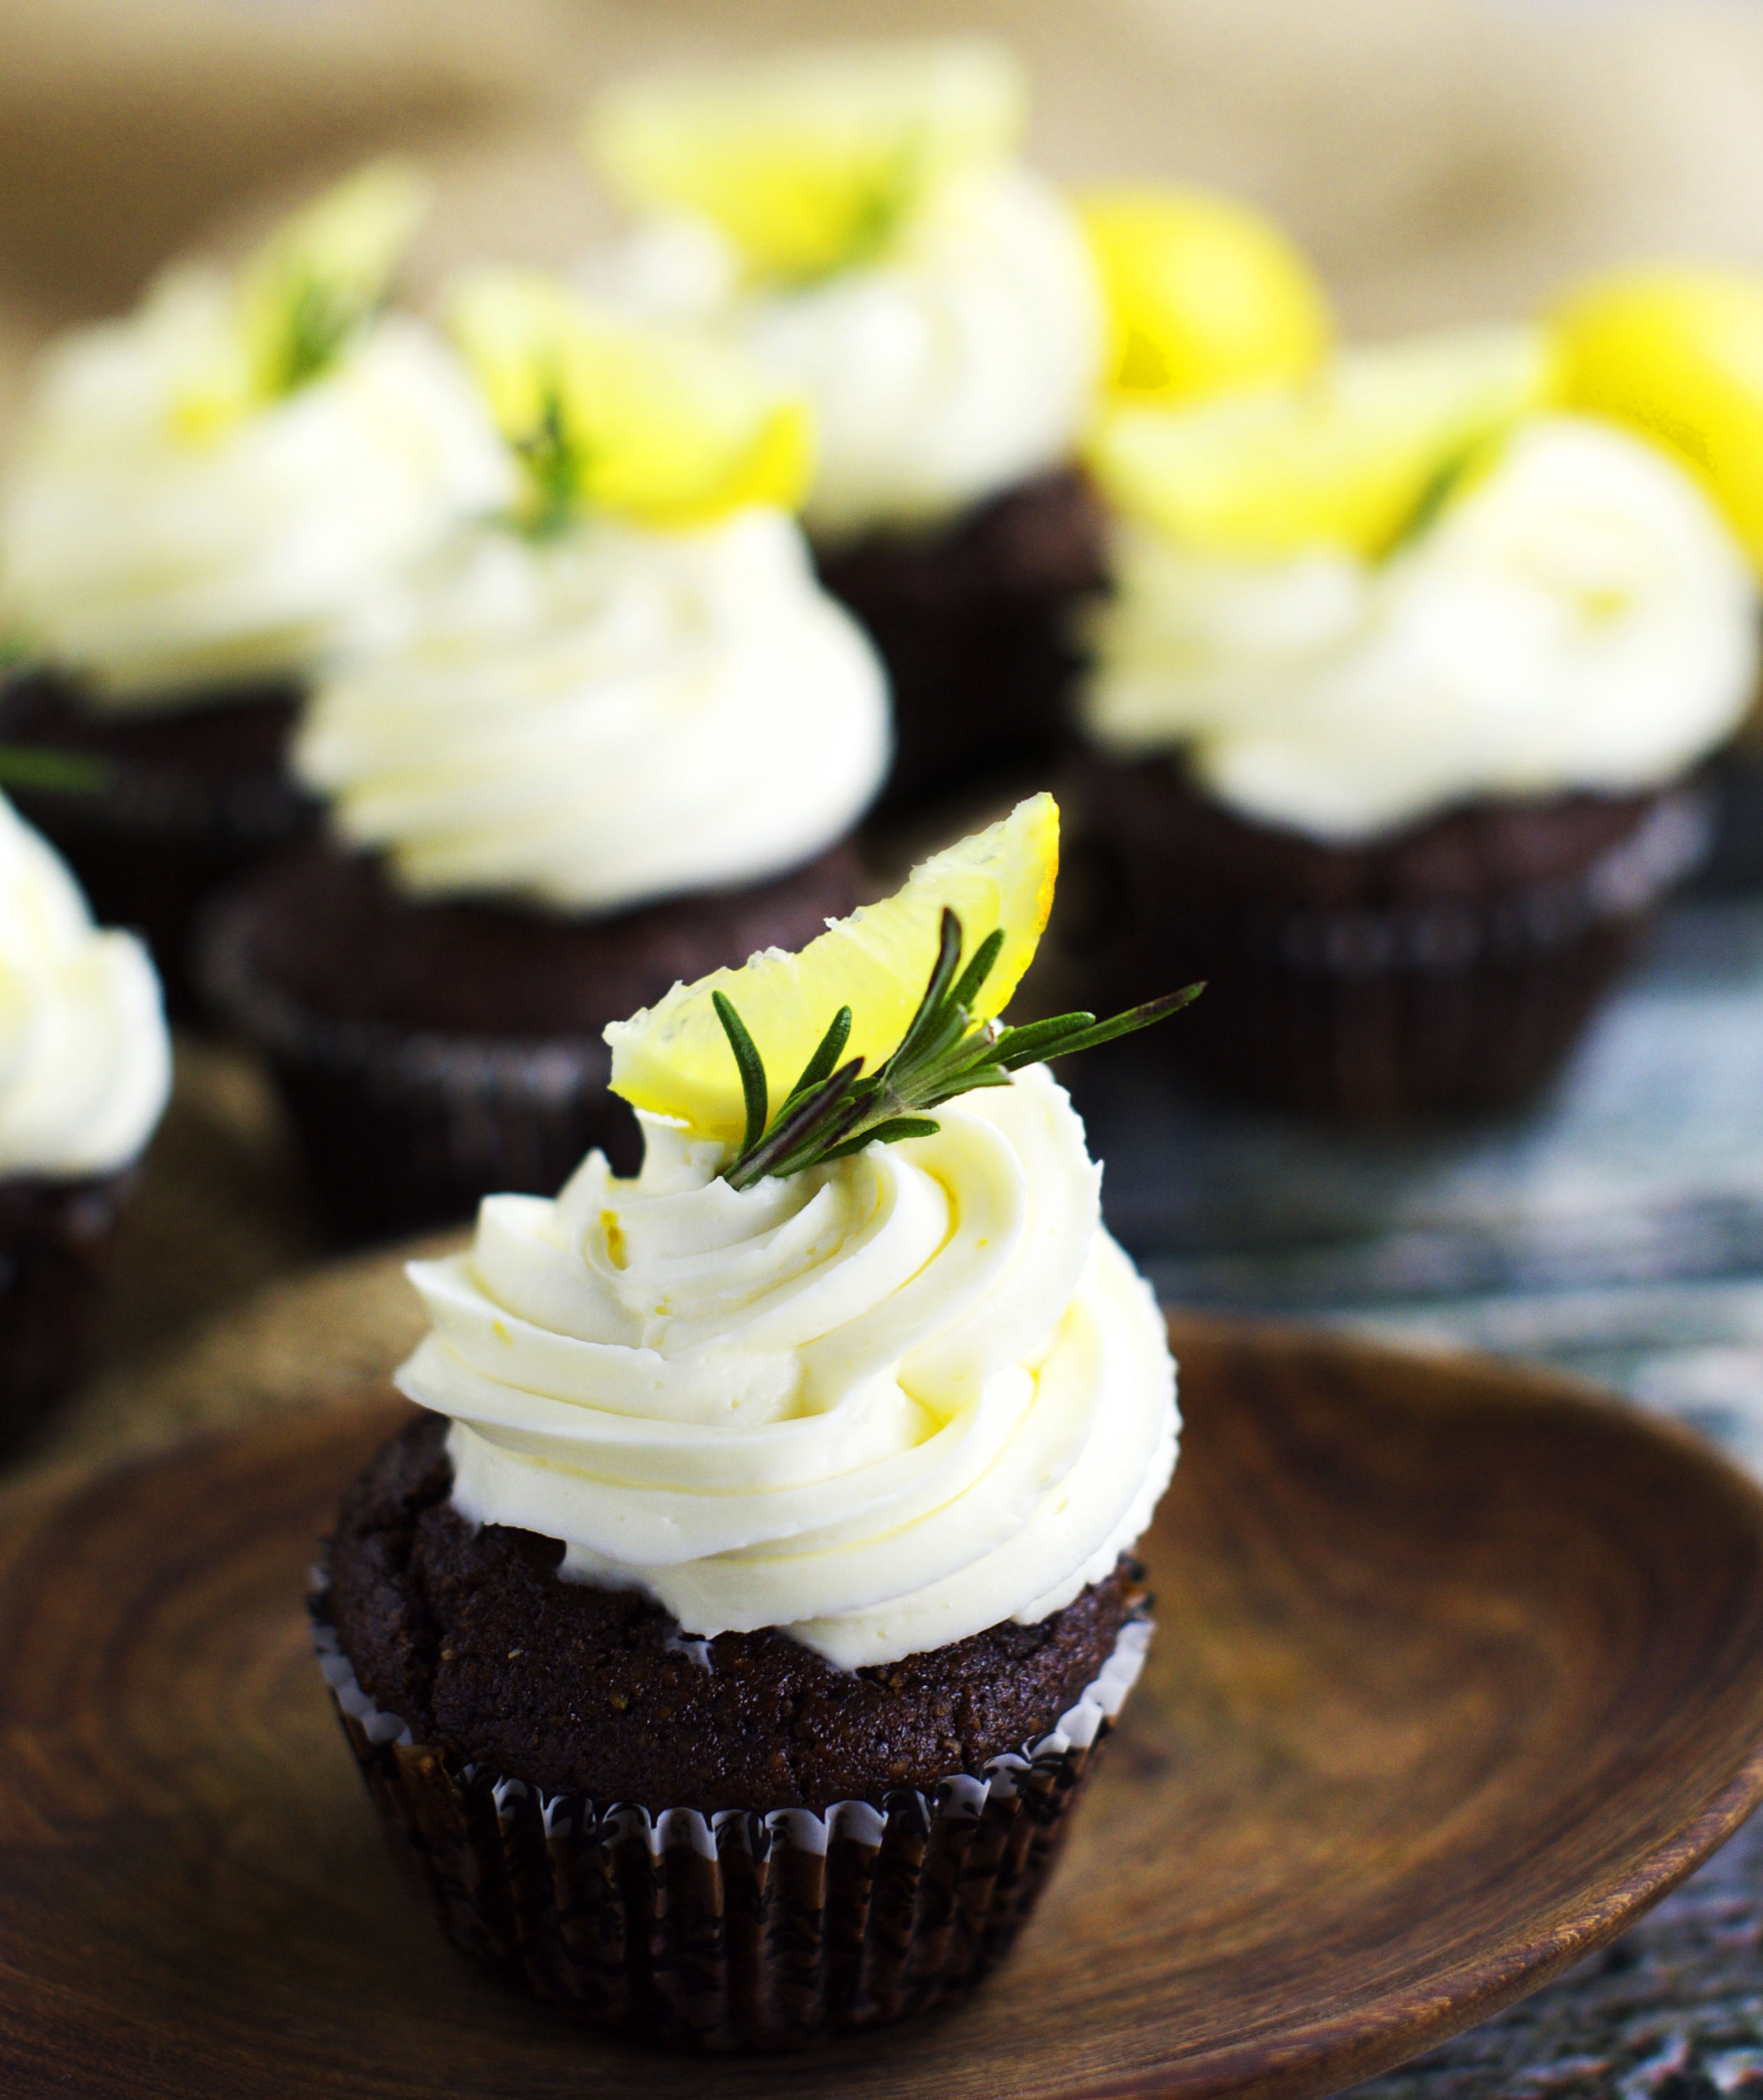 Close up Photo of Low-Carb Chocolate Rosemary Cupcakes with Lemon Frosting